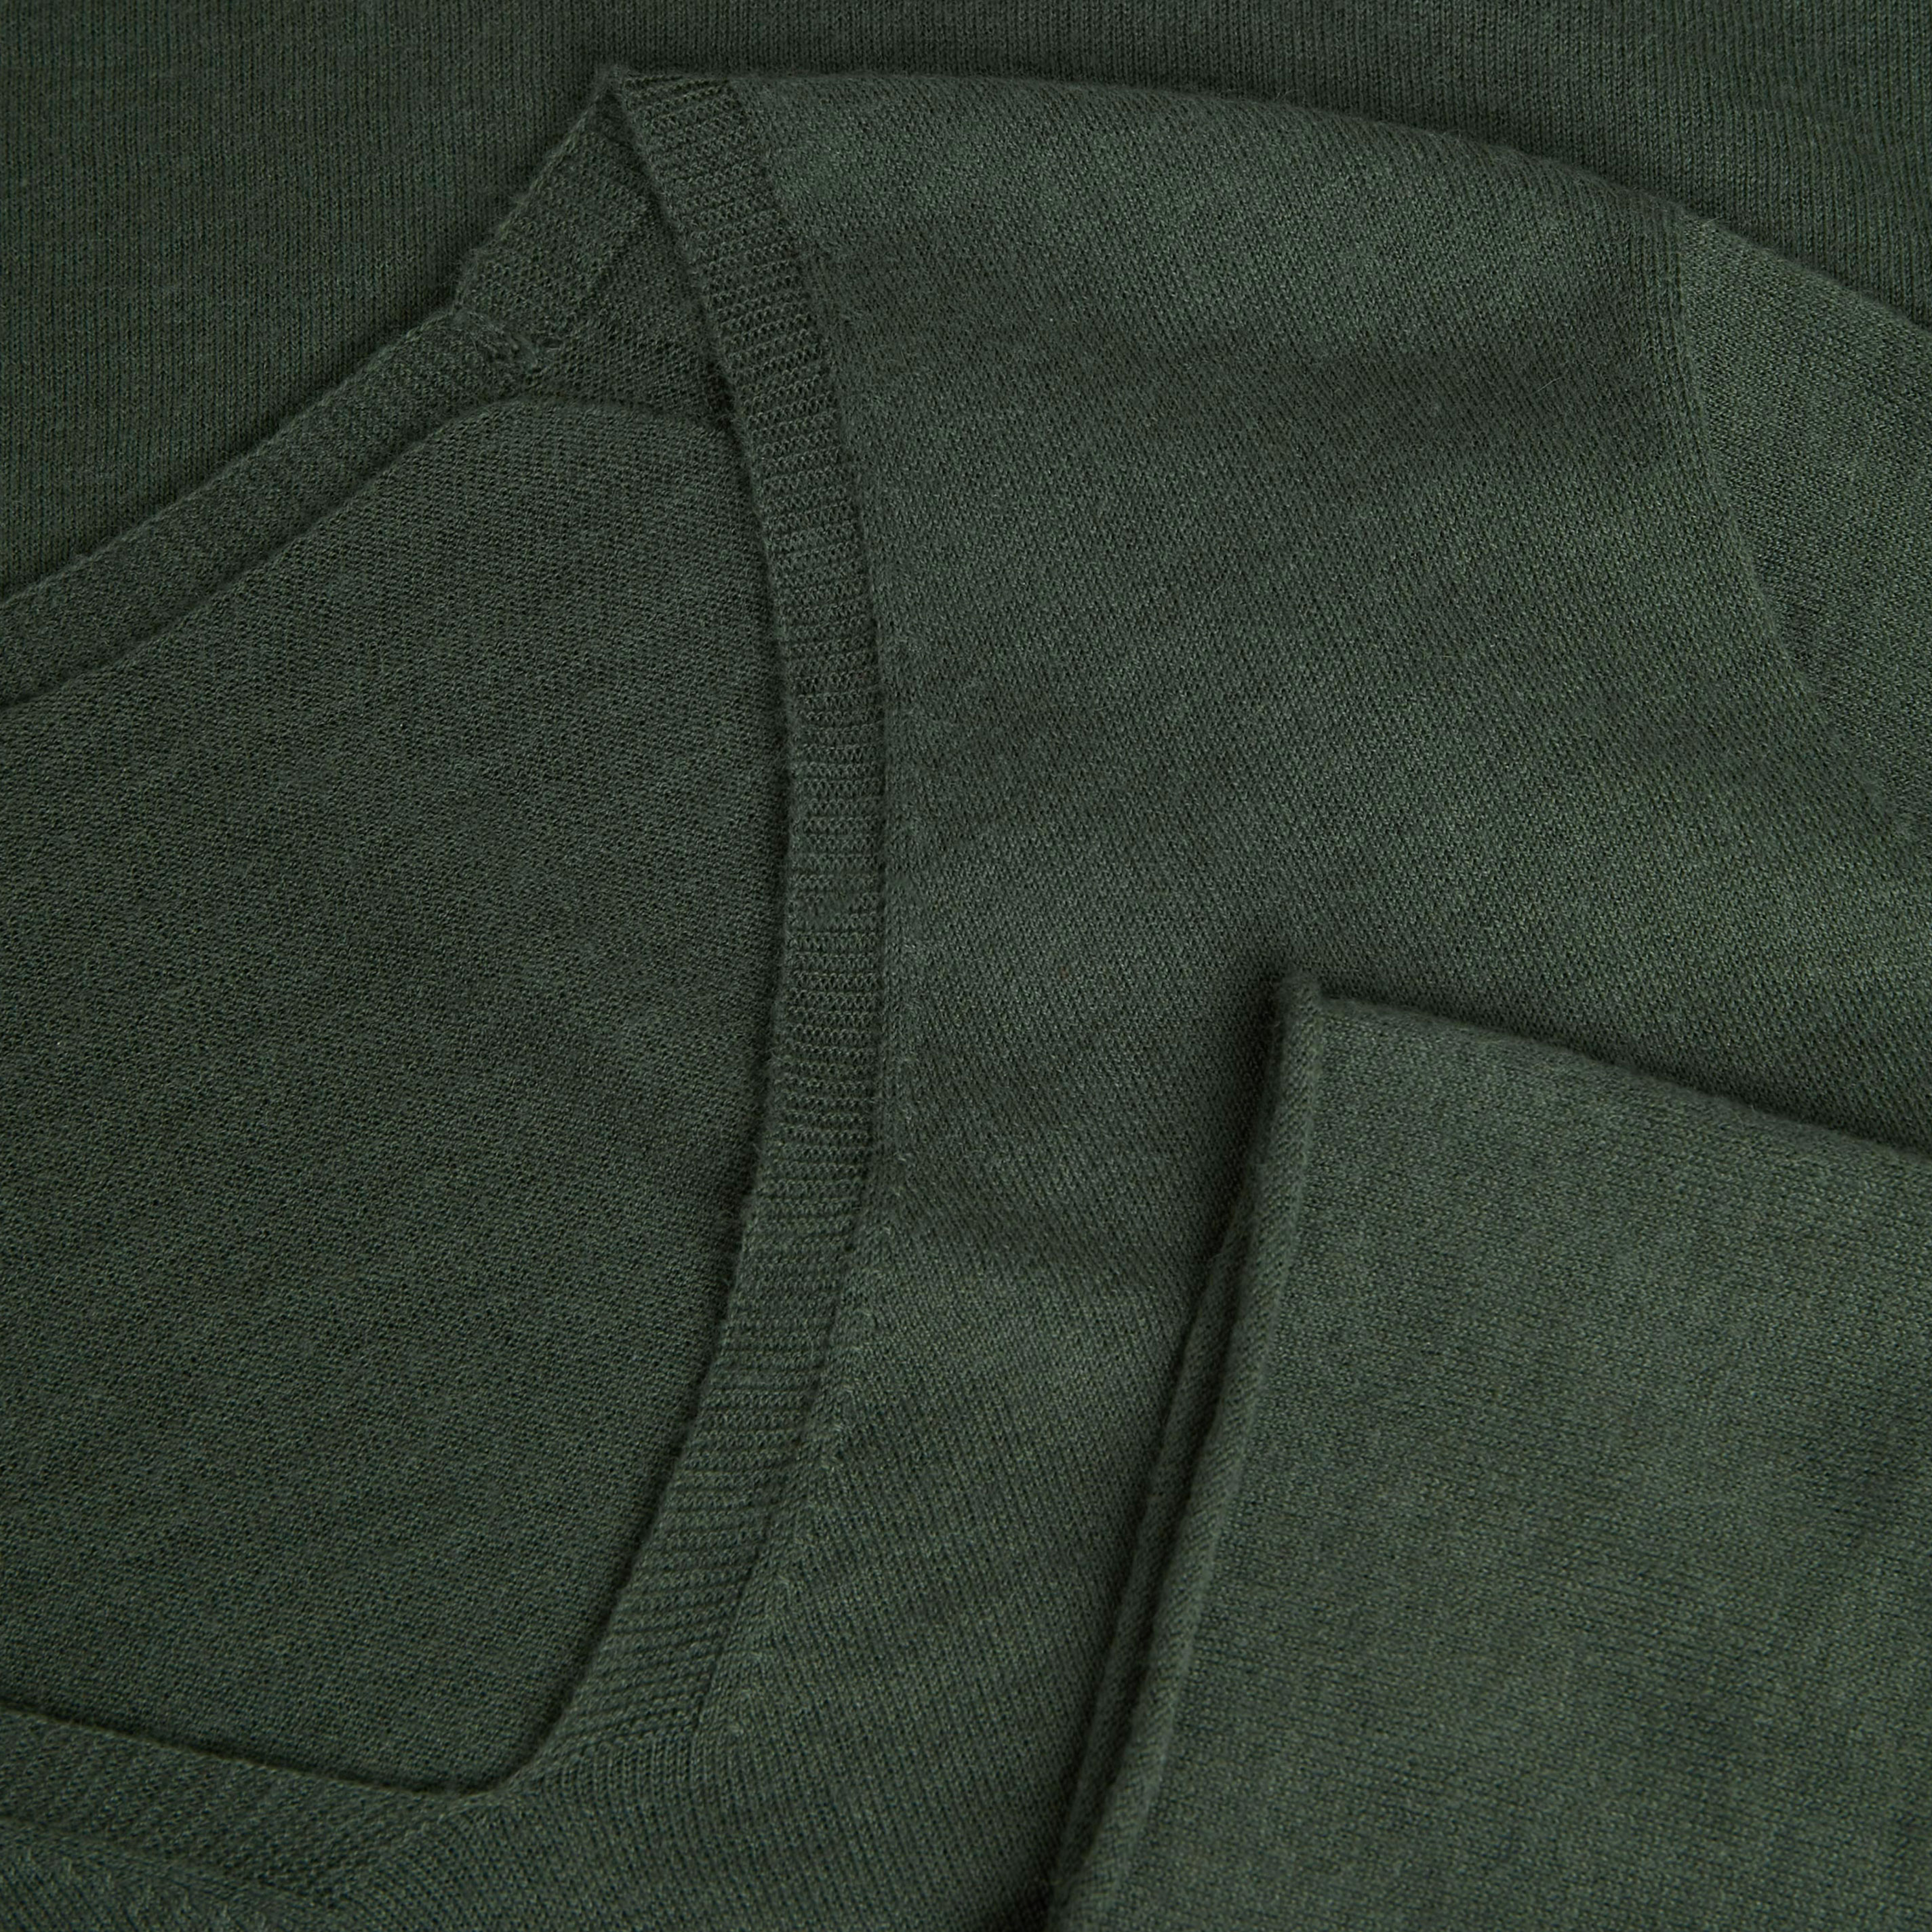 Cashmere V-neck Top-Grey Green - Grey Green S